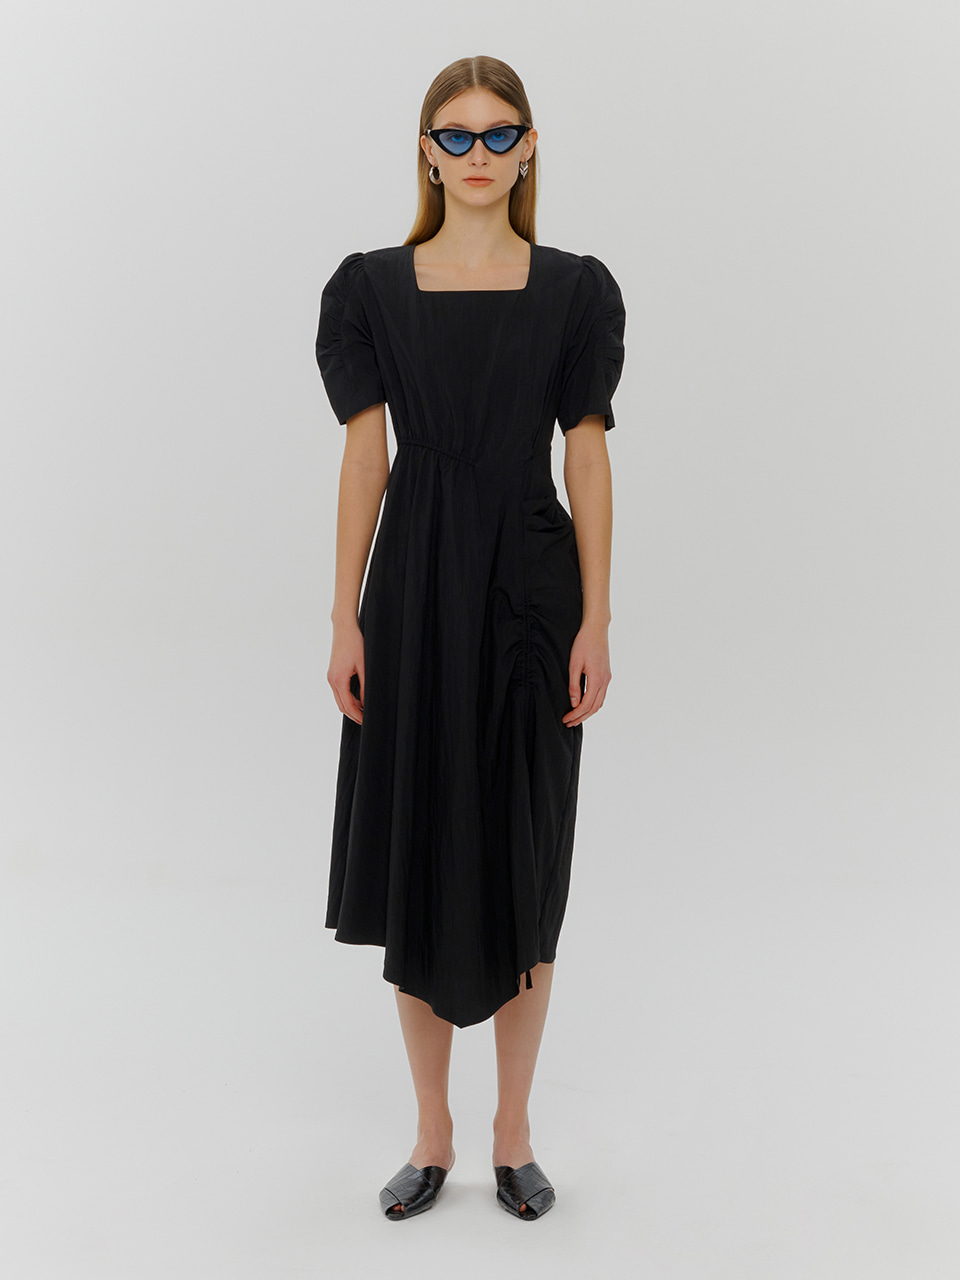 Square Neck String Dress, Black